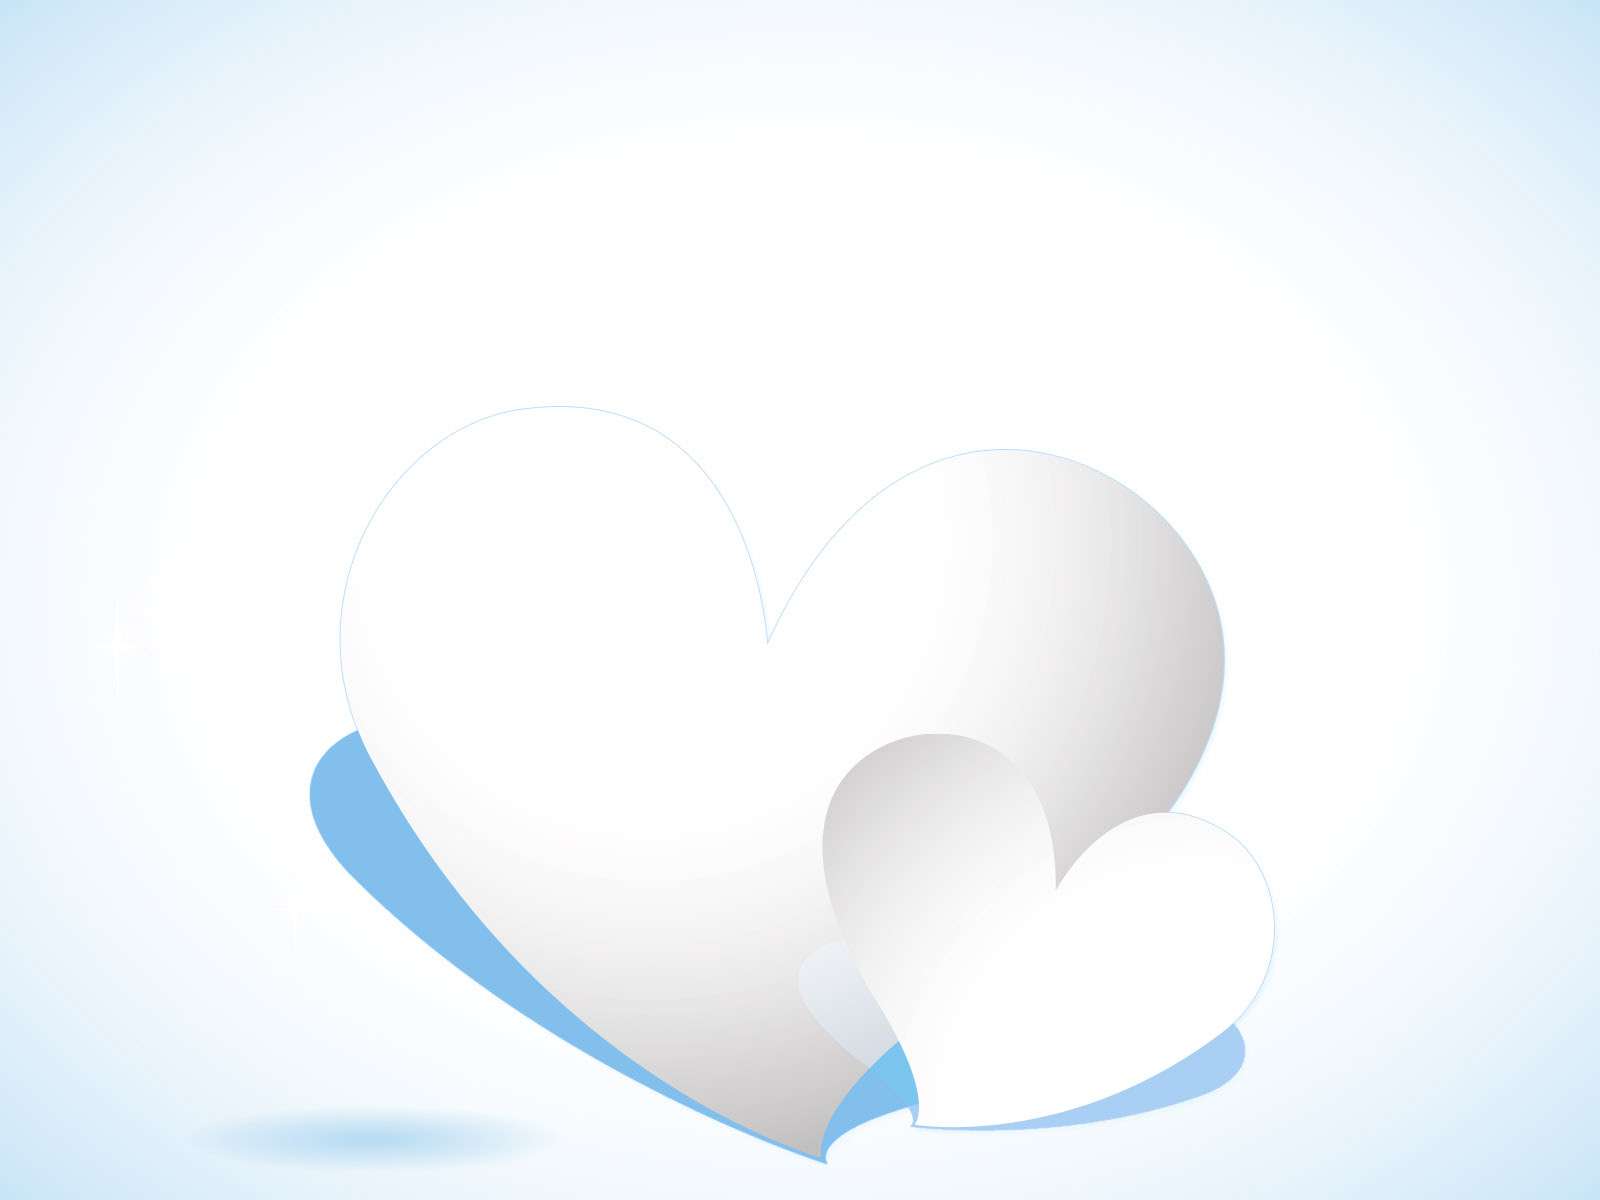 Ice Heart Powerpoint Templates 3d Graphics Love Silver Free Ppt Backgrounds And Templates